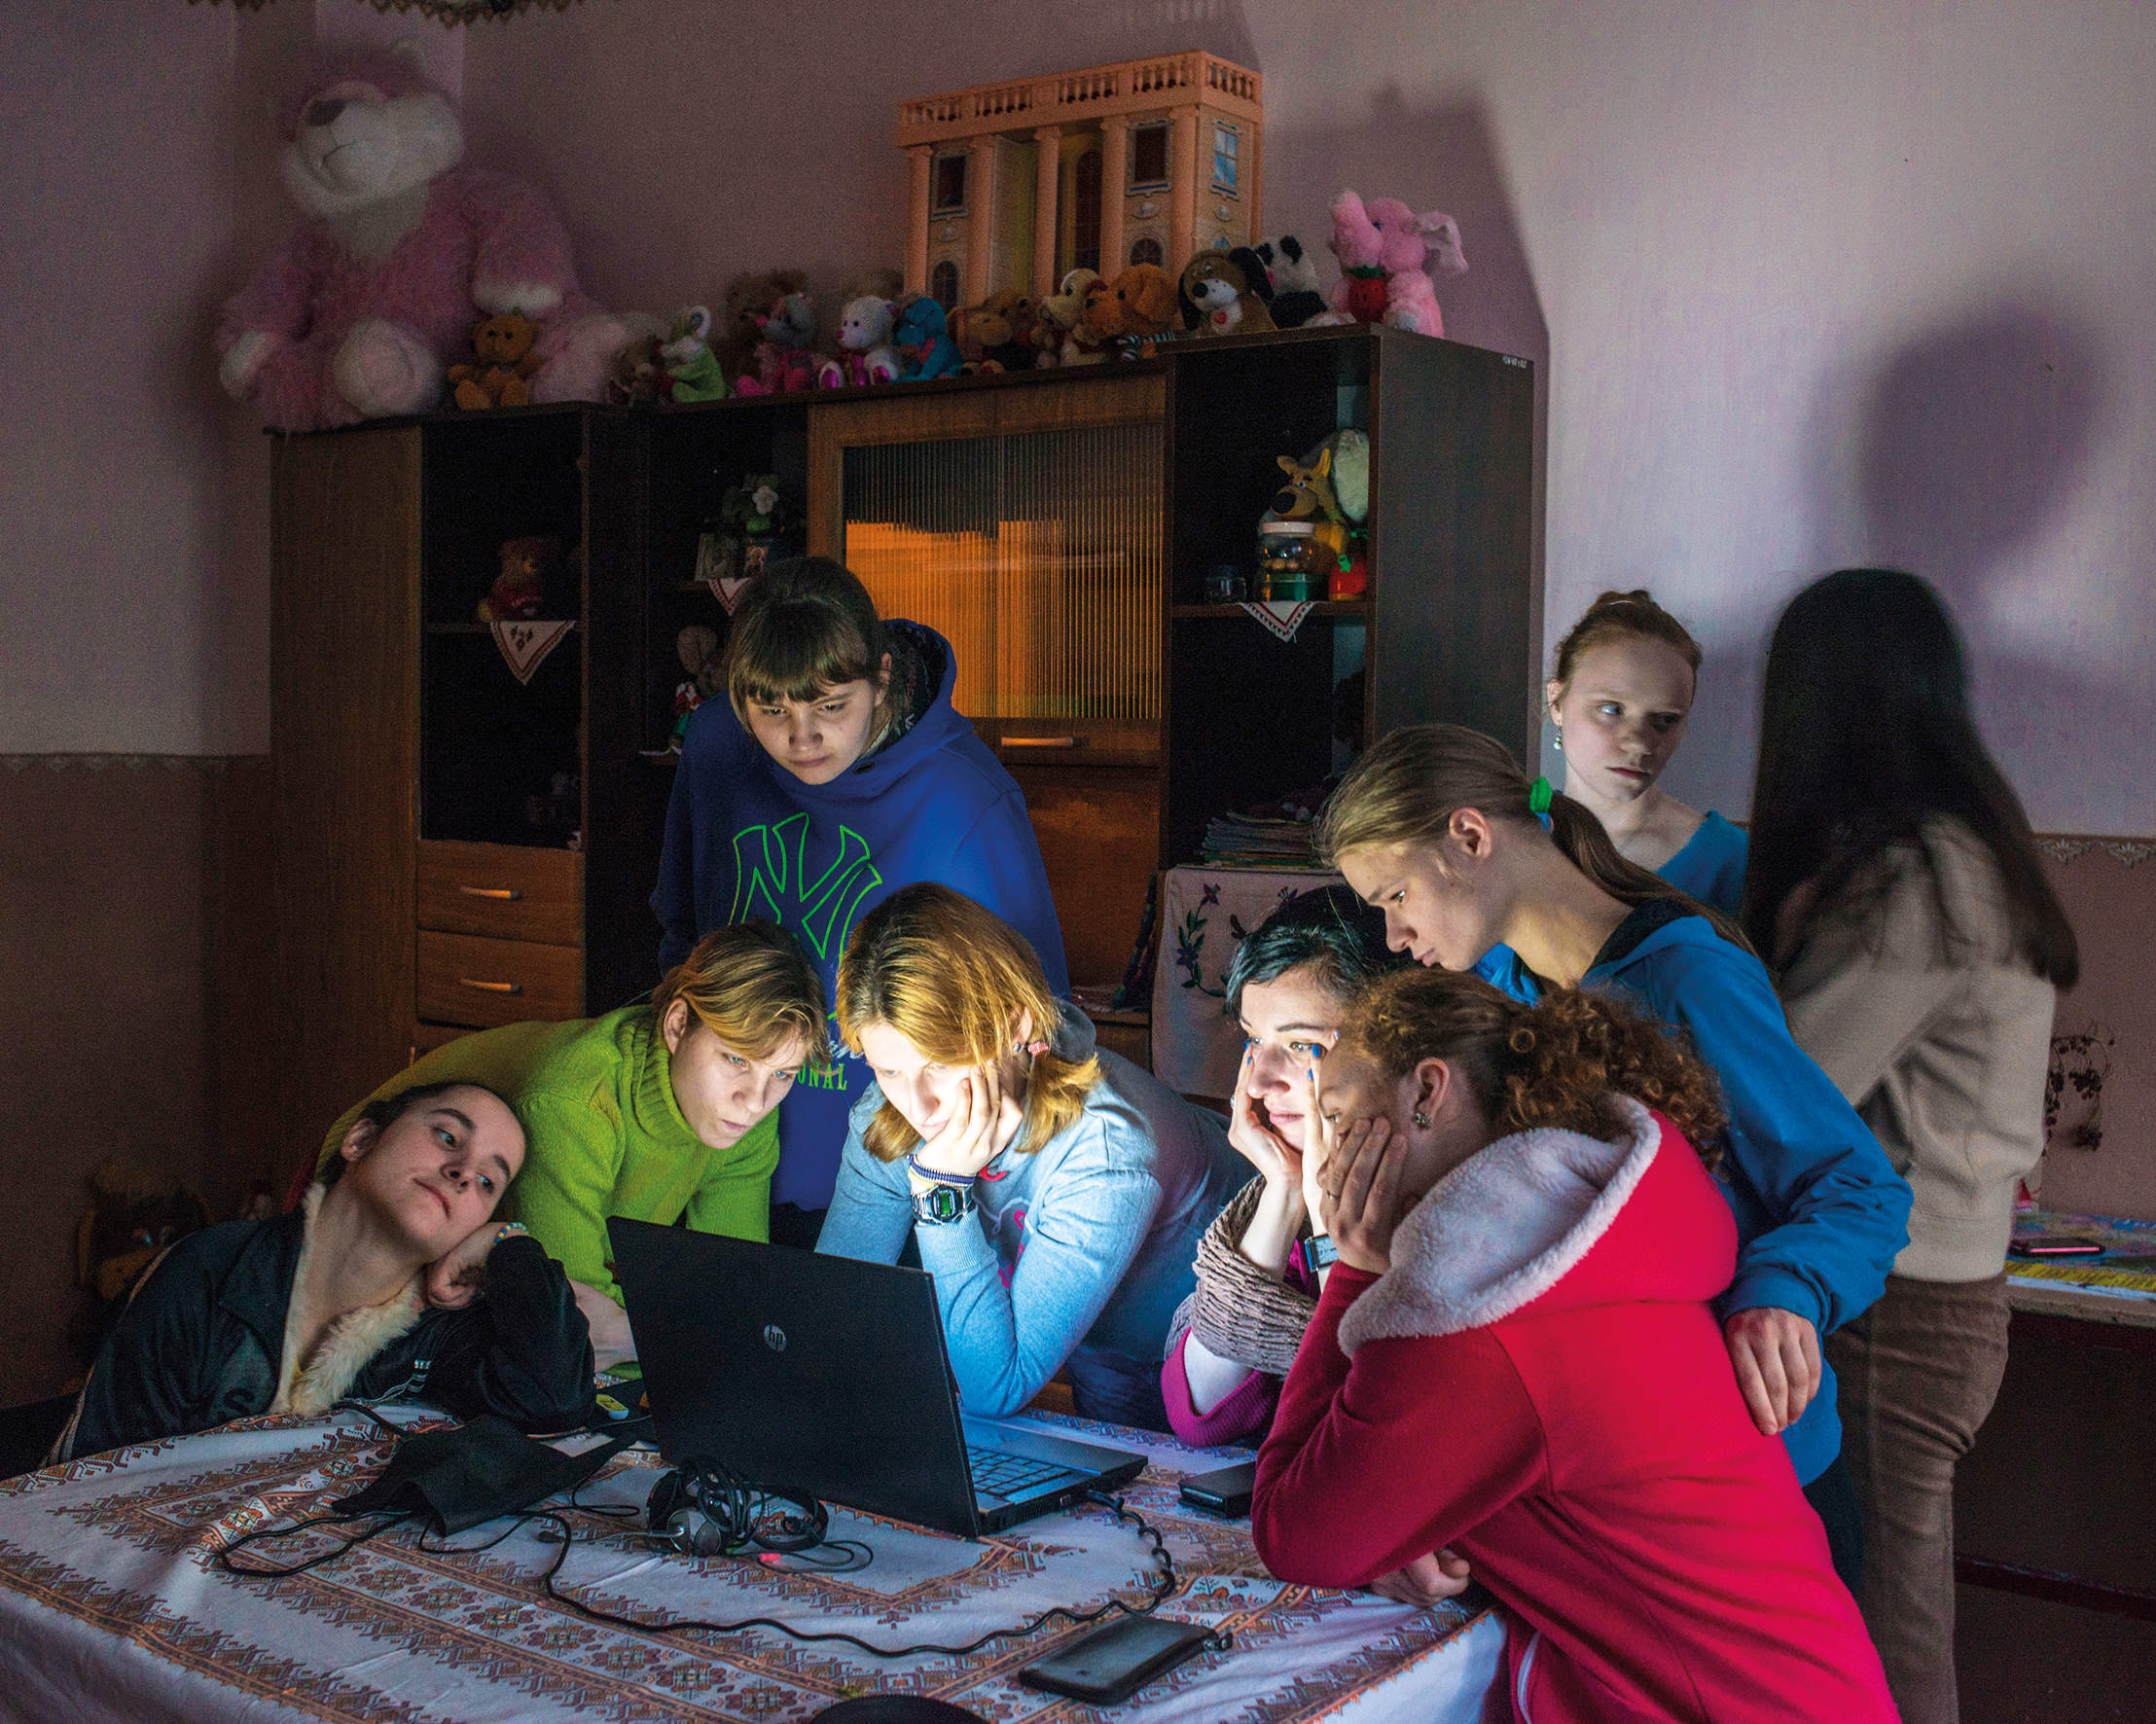 Kids These Days and iGen: two competing visions of what makes a millennial